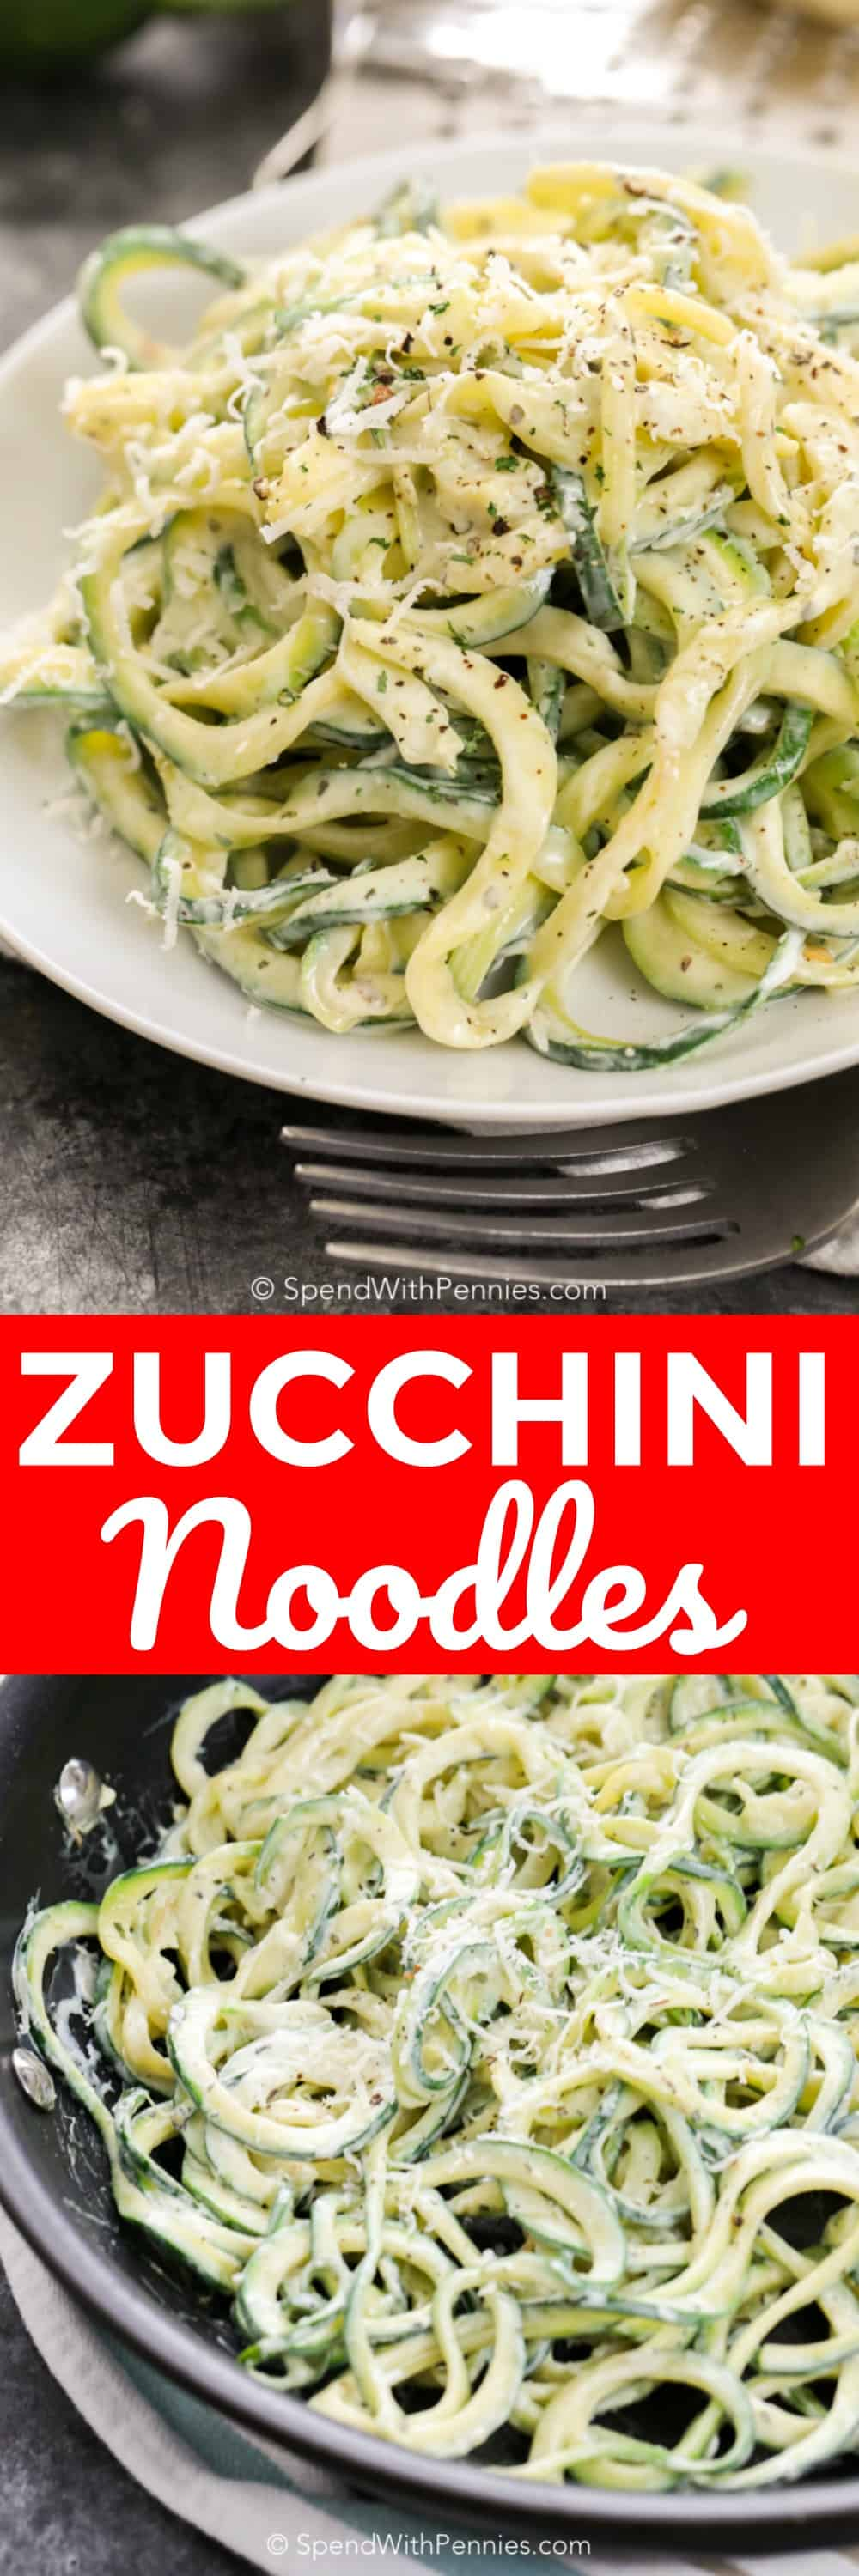 These creamy dreamy zucchini noodles are the perfect side dish. We also love making them for lunch! #spendwithpennies #zucchini #zucchininoodles #creamyzucchininoodles #sidedish #zoodles